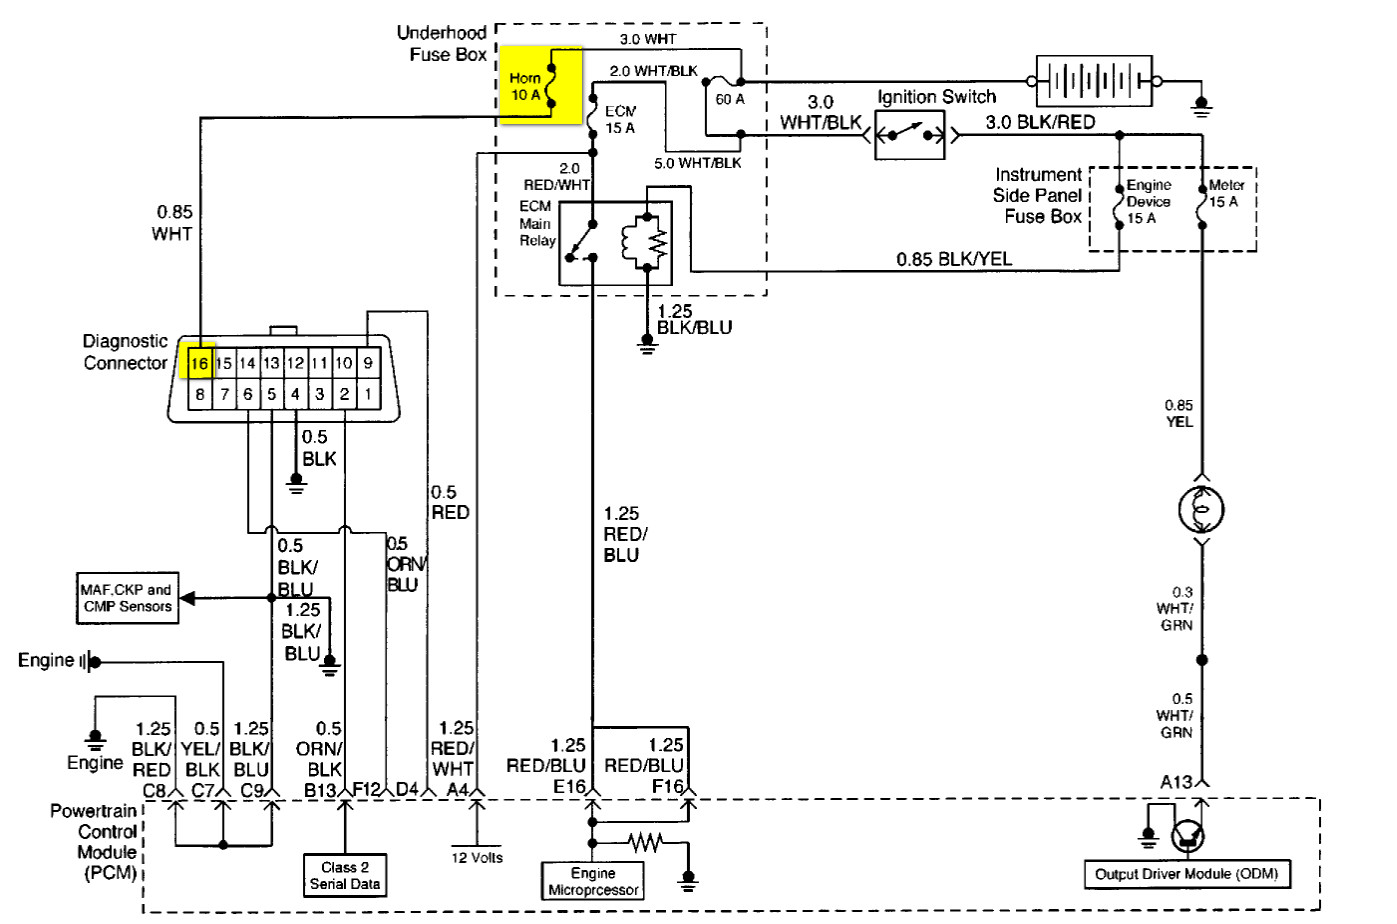 isuzu rodeo wiring diagram goodman electric heater hundred fuse box additionally 2003 library